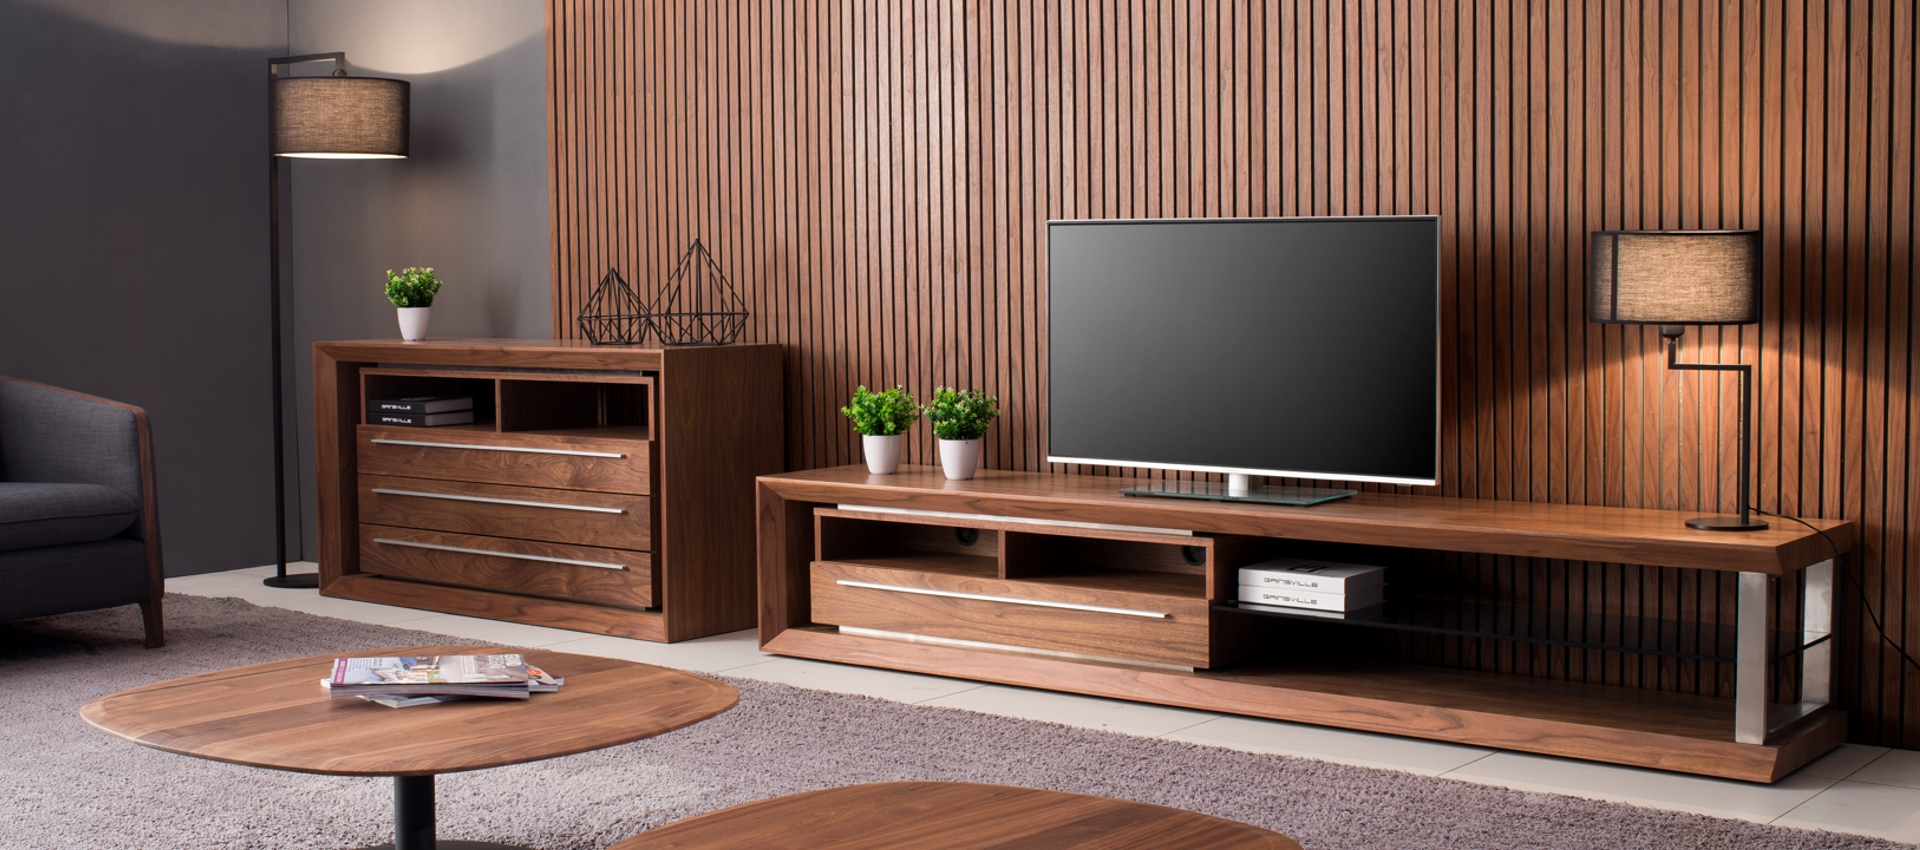 M240A Tv Unit in Walnut Finish